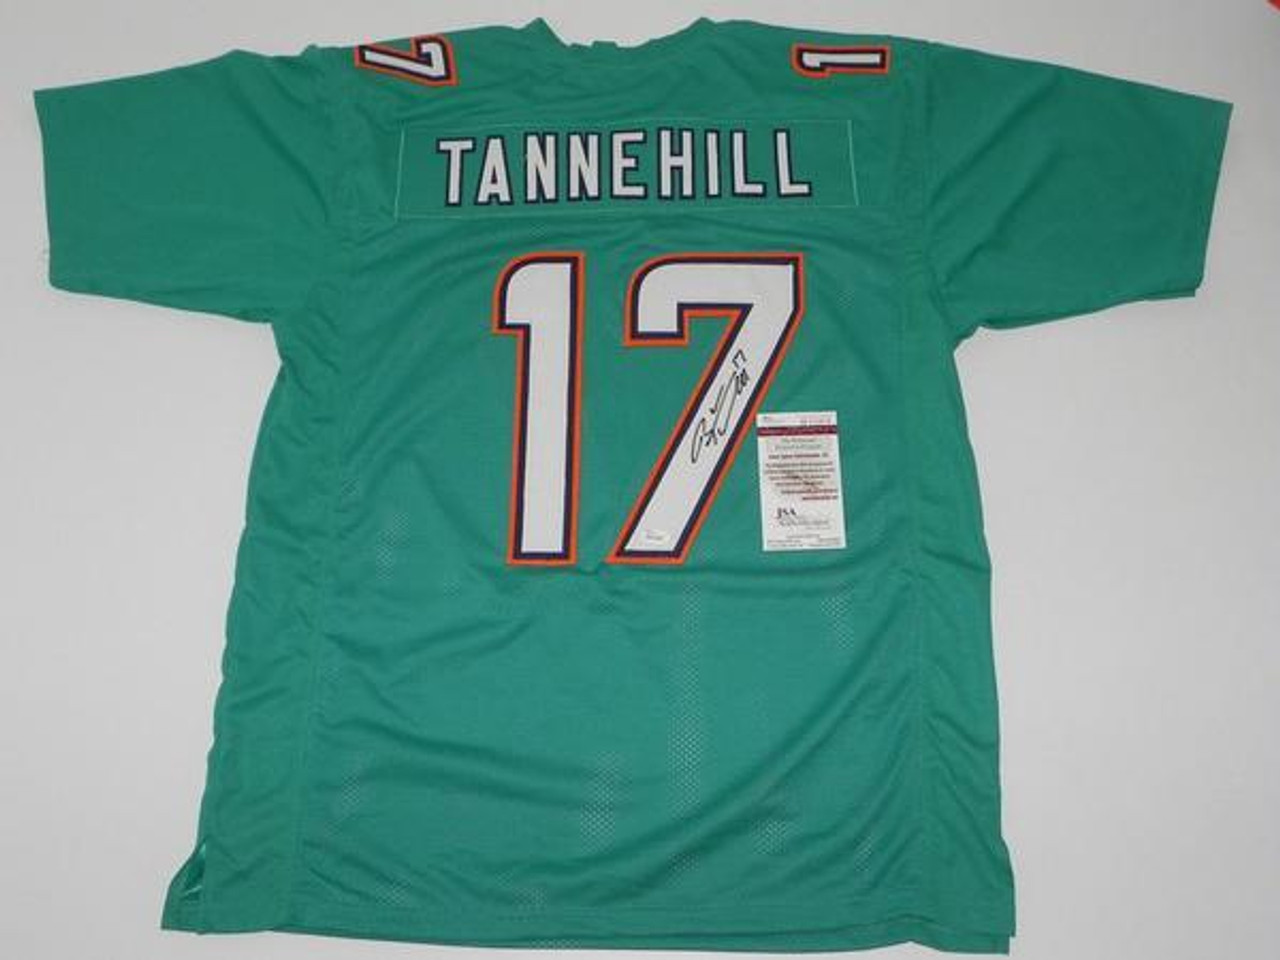 cheap for discount 7d48f 152ce Ryan Tannehill Miami Dolphins Autographed Teal Custom NFL Football Jersey